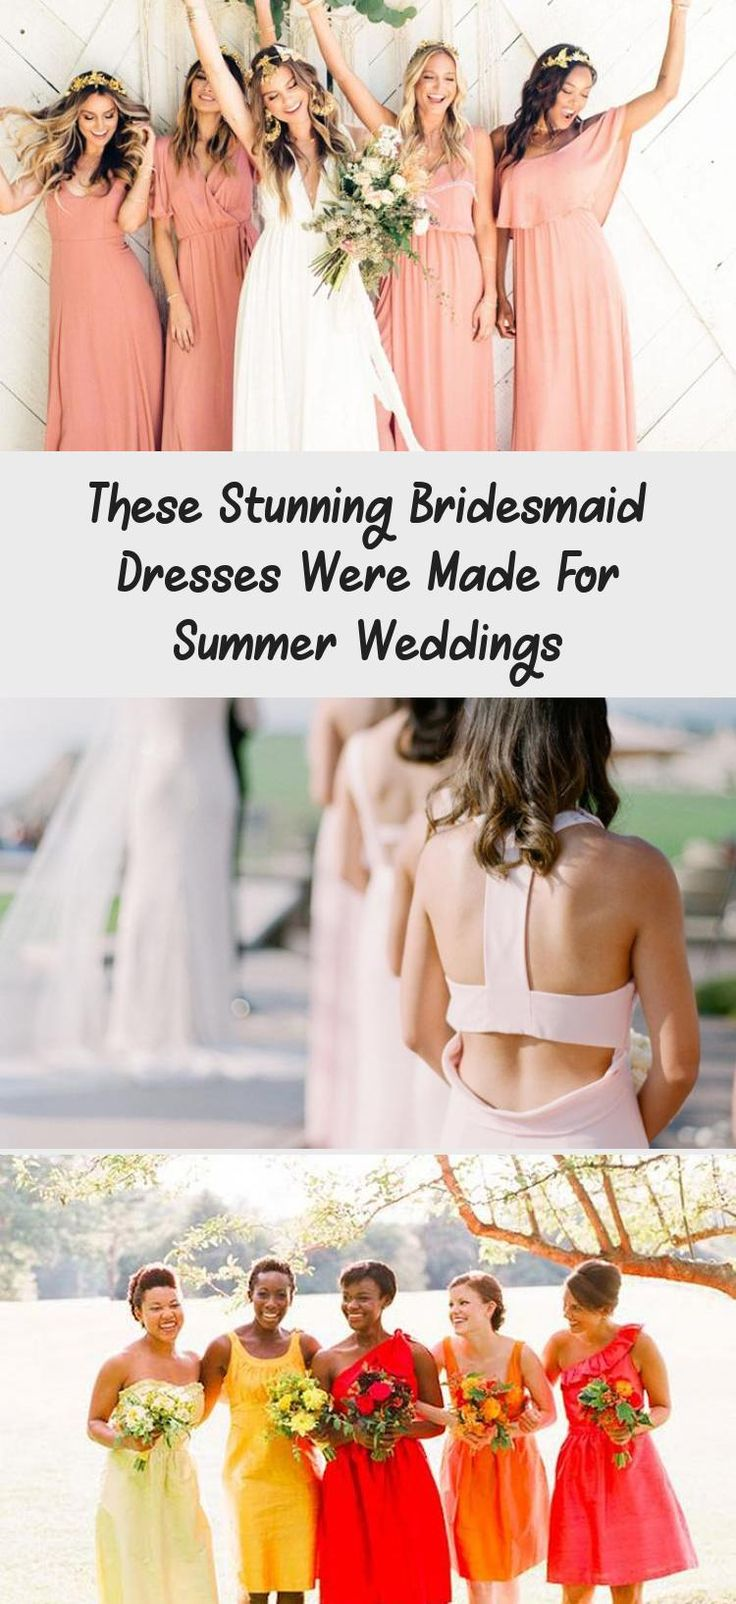 The Most Stunning Summer Bridesmaid Dresses Of 2018 #BridesmaidDressesCoral #IvoryBridesmaidDresses #PlumBridesmaidDresses #BridesmaidDressesBlue #MaroonBridesmaidDresses